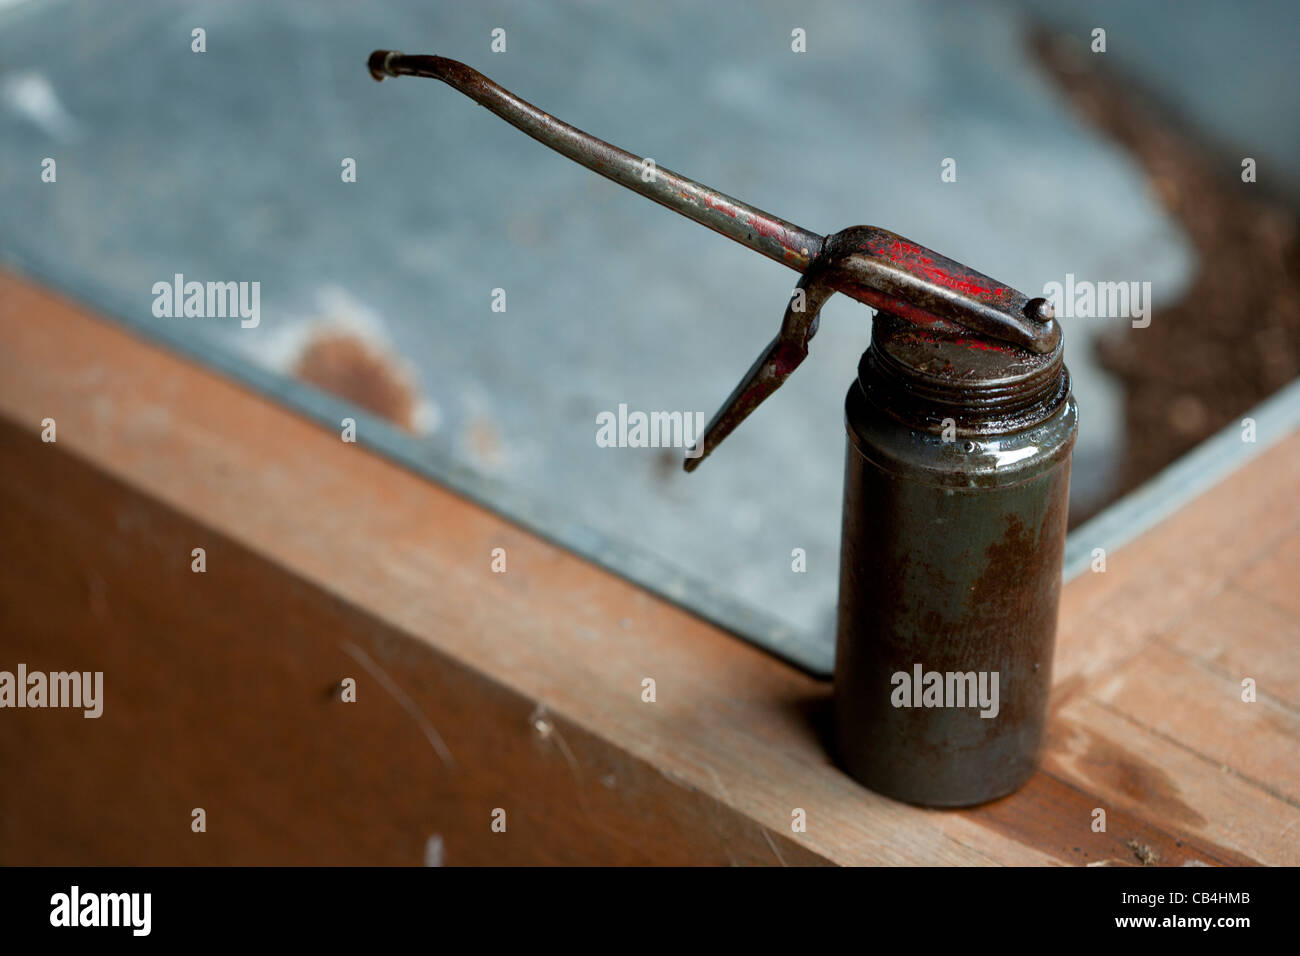 Old fashioned oil can with a trigger and spout - Stock Image